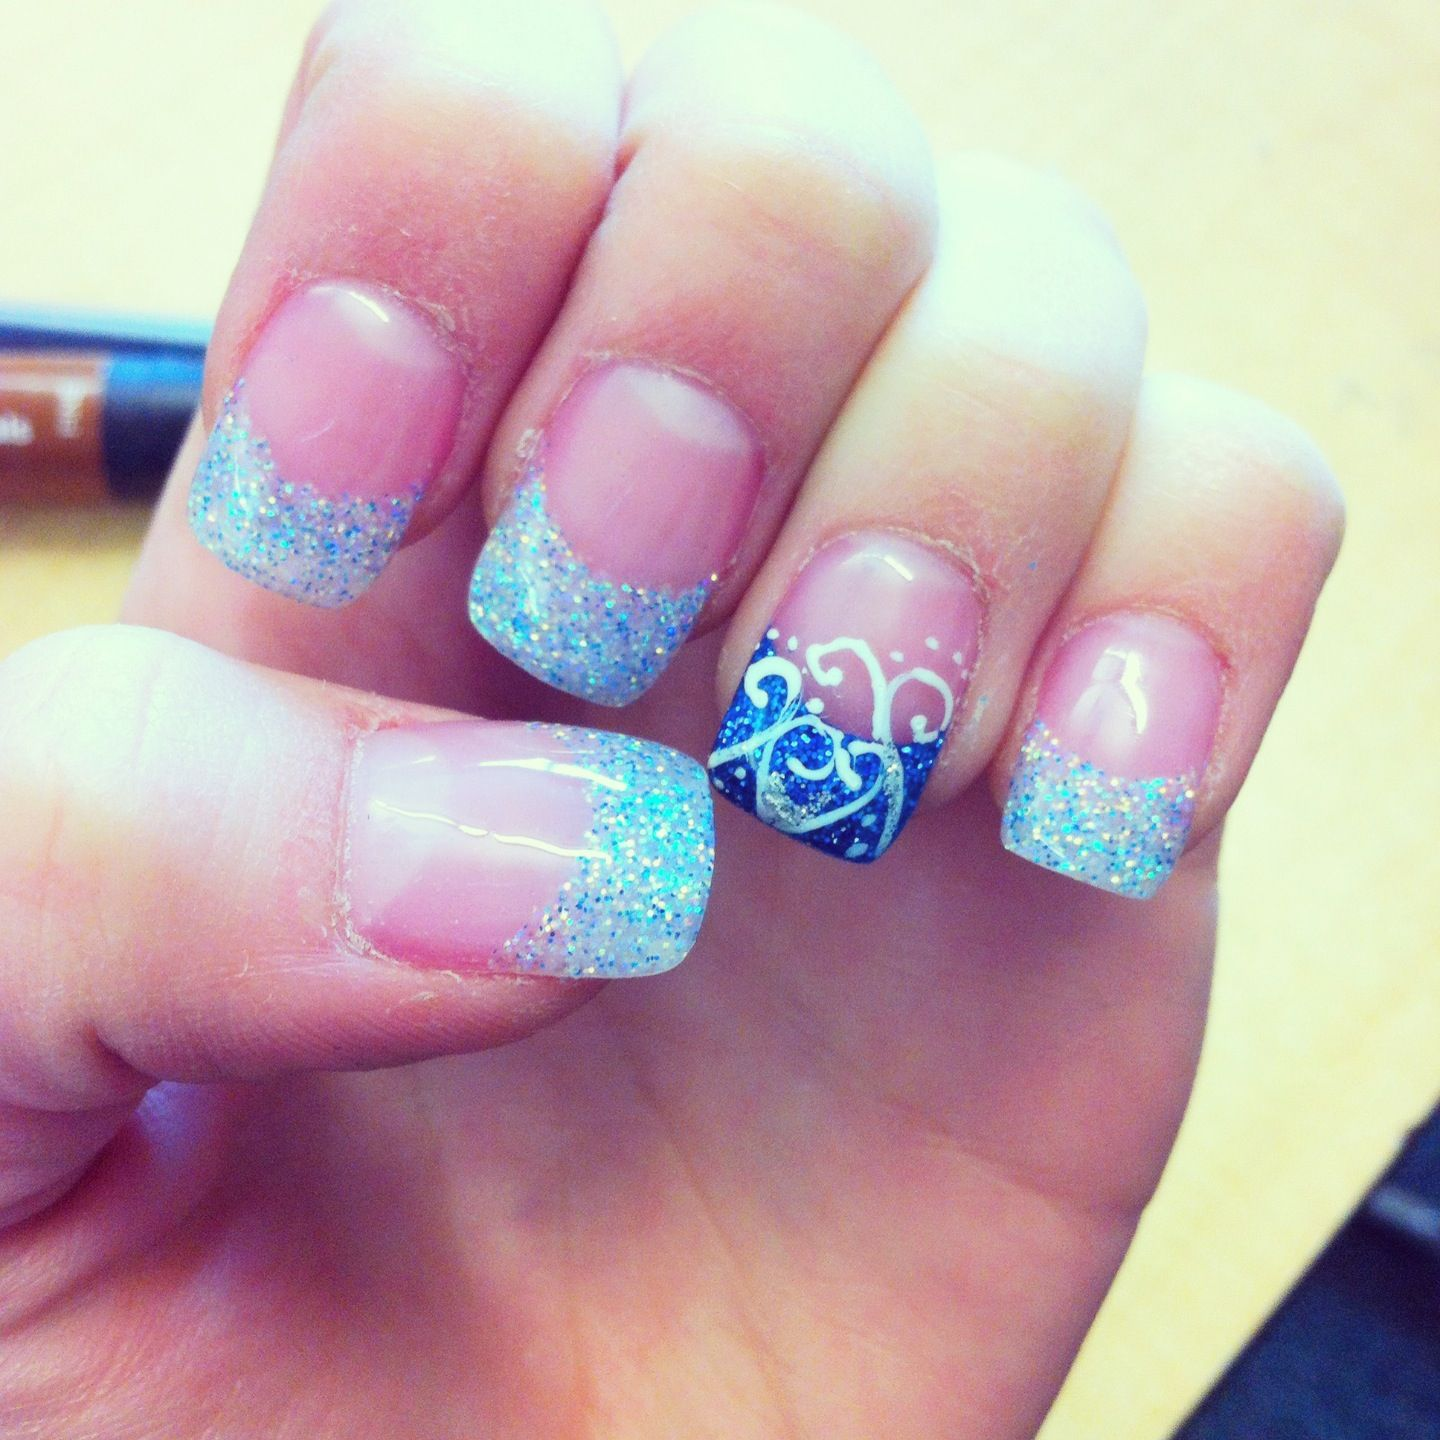 Blue Gel Nail Designs: Sparkle And Blue Gel Nails